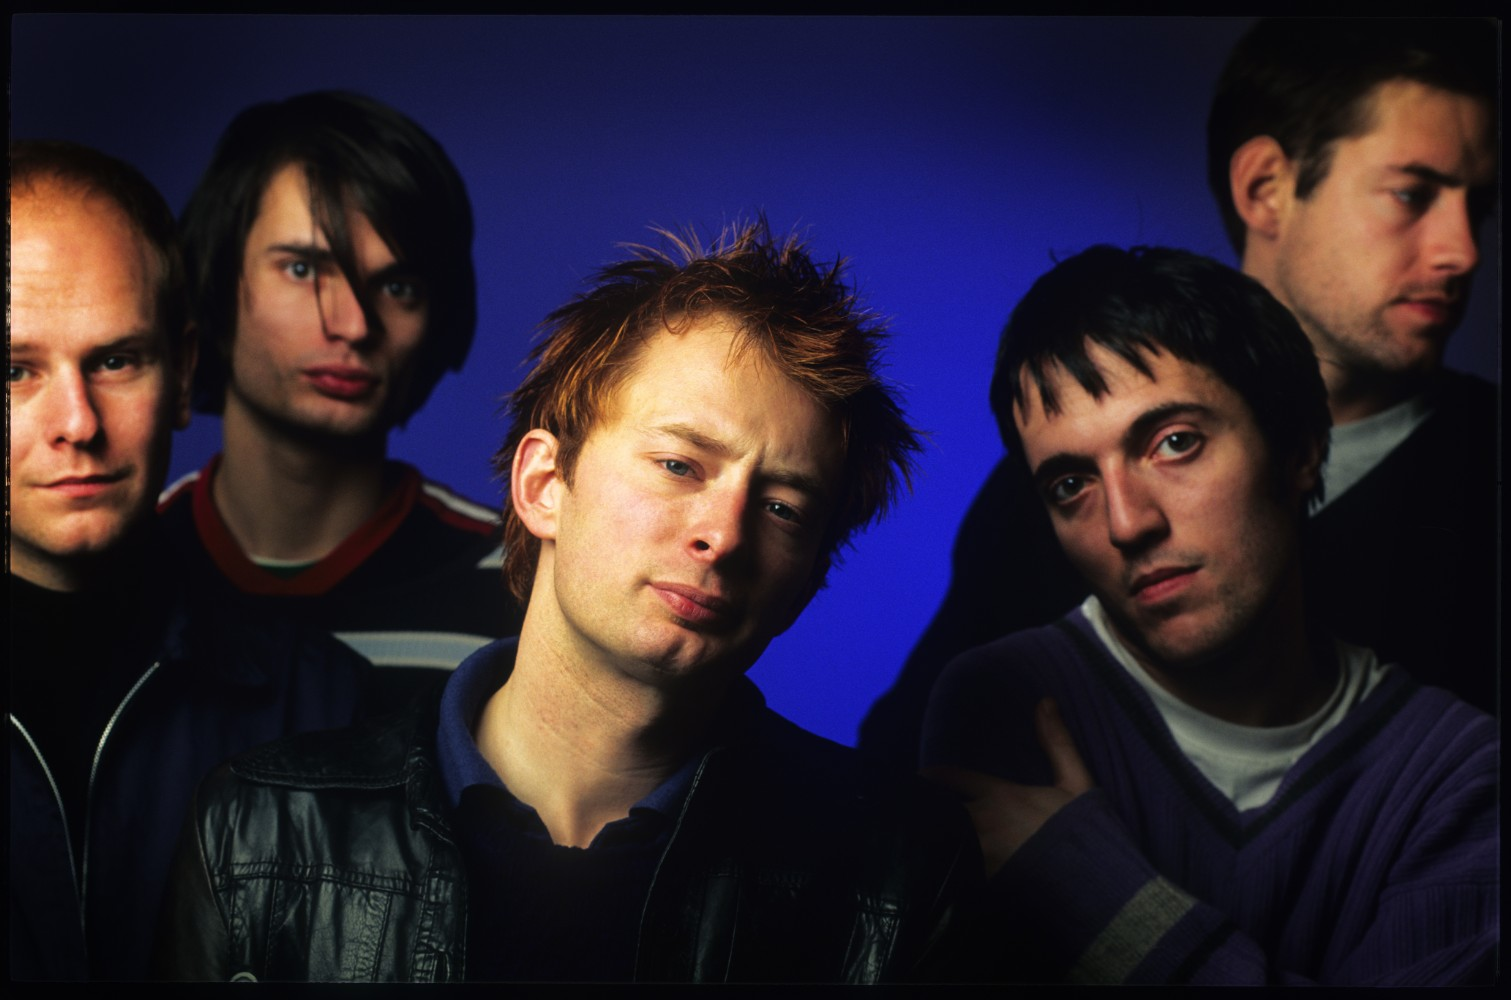 Radiohead&#8217;s <i>OK Computer</i> Made Them Our 1997 &#8220;Band of the Year&#8221;